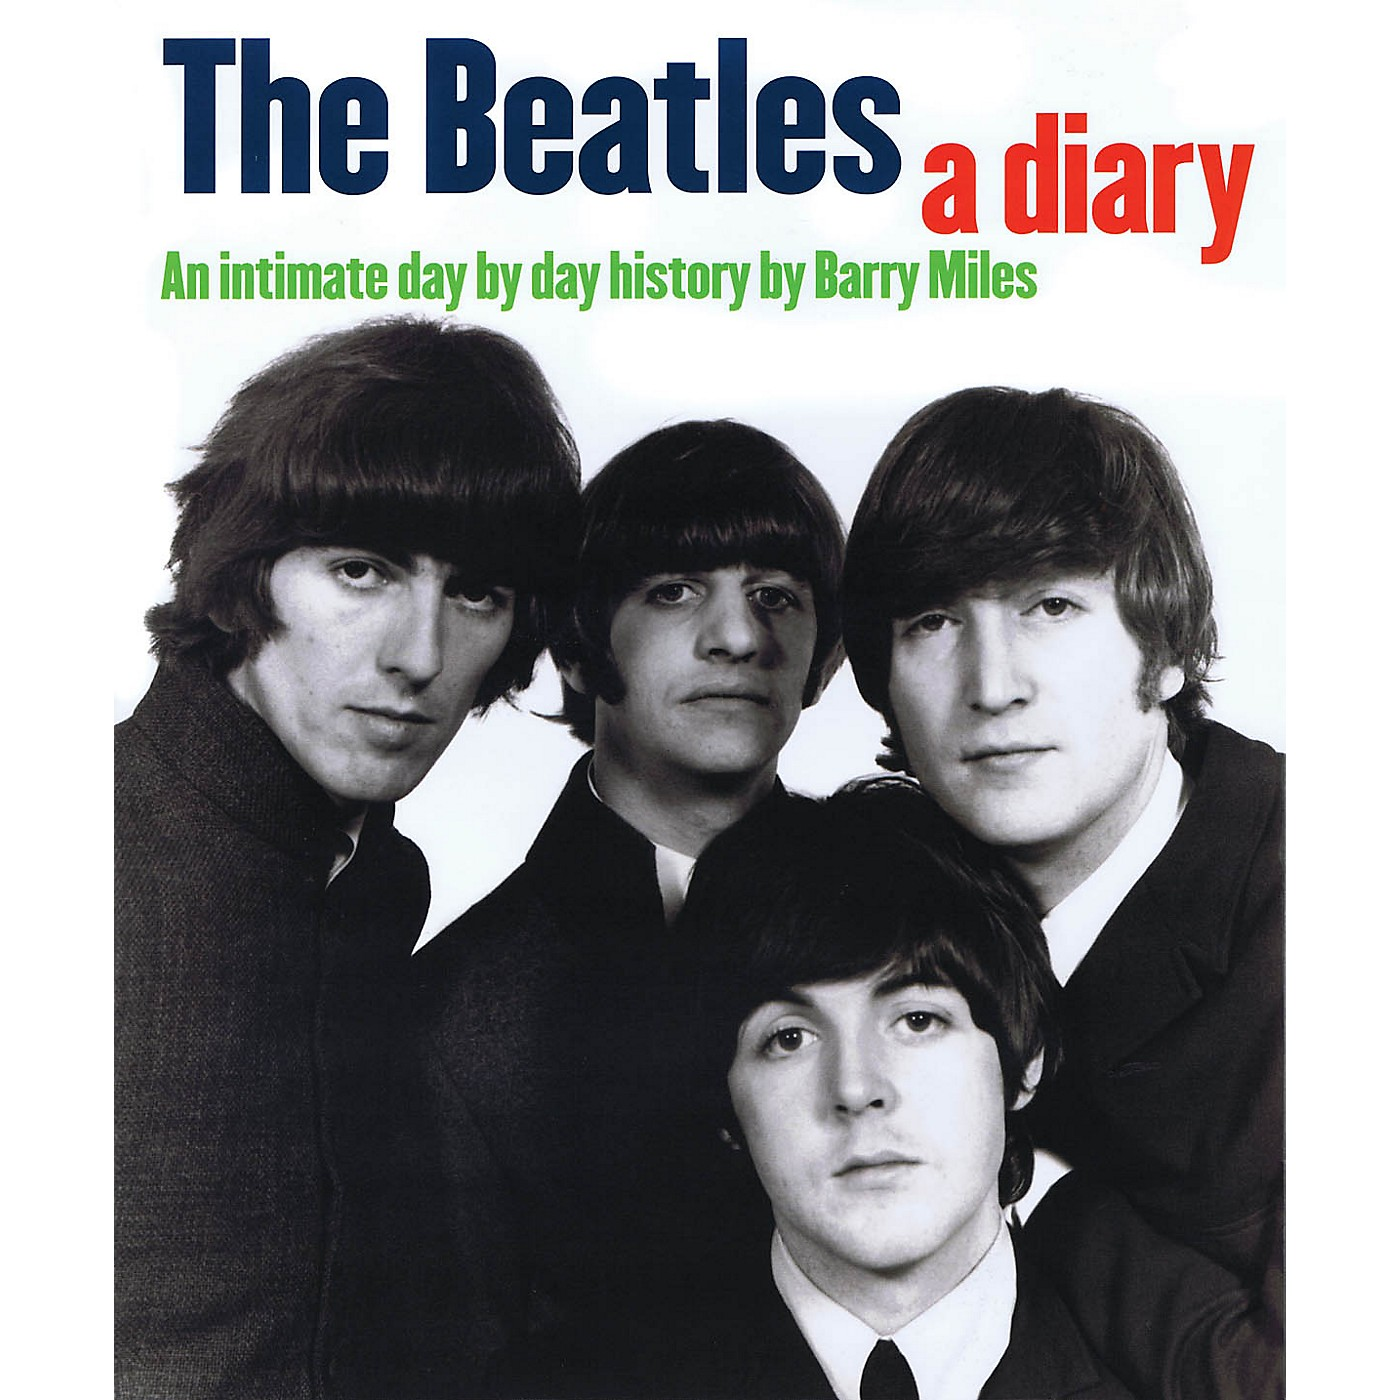 Omnibus The Beatles - A Diary (An Intimate Day by Day History) Omnibus Press Series Softcover thumbnail